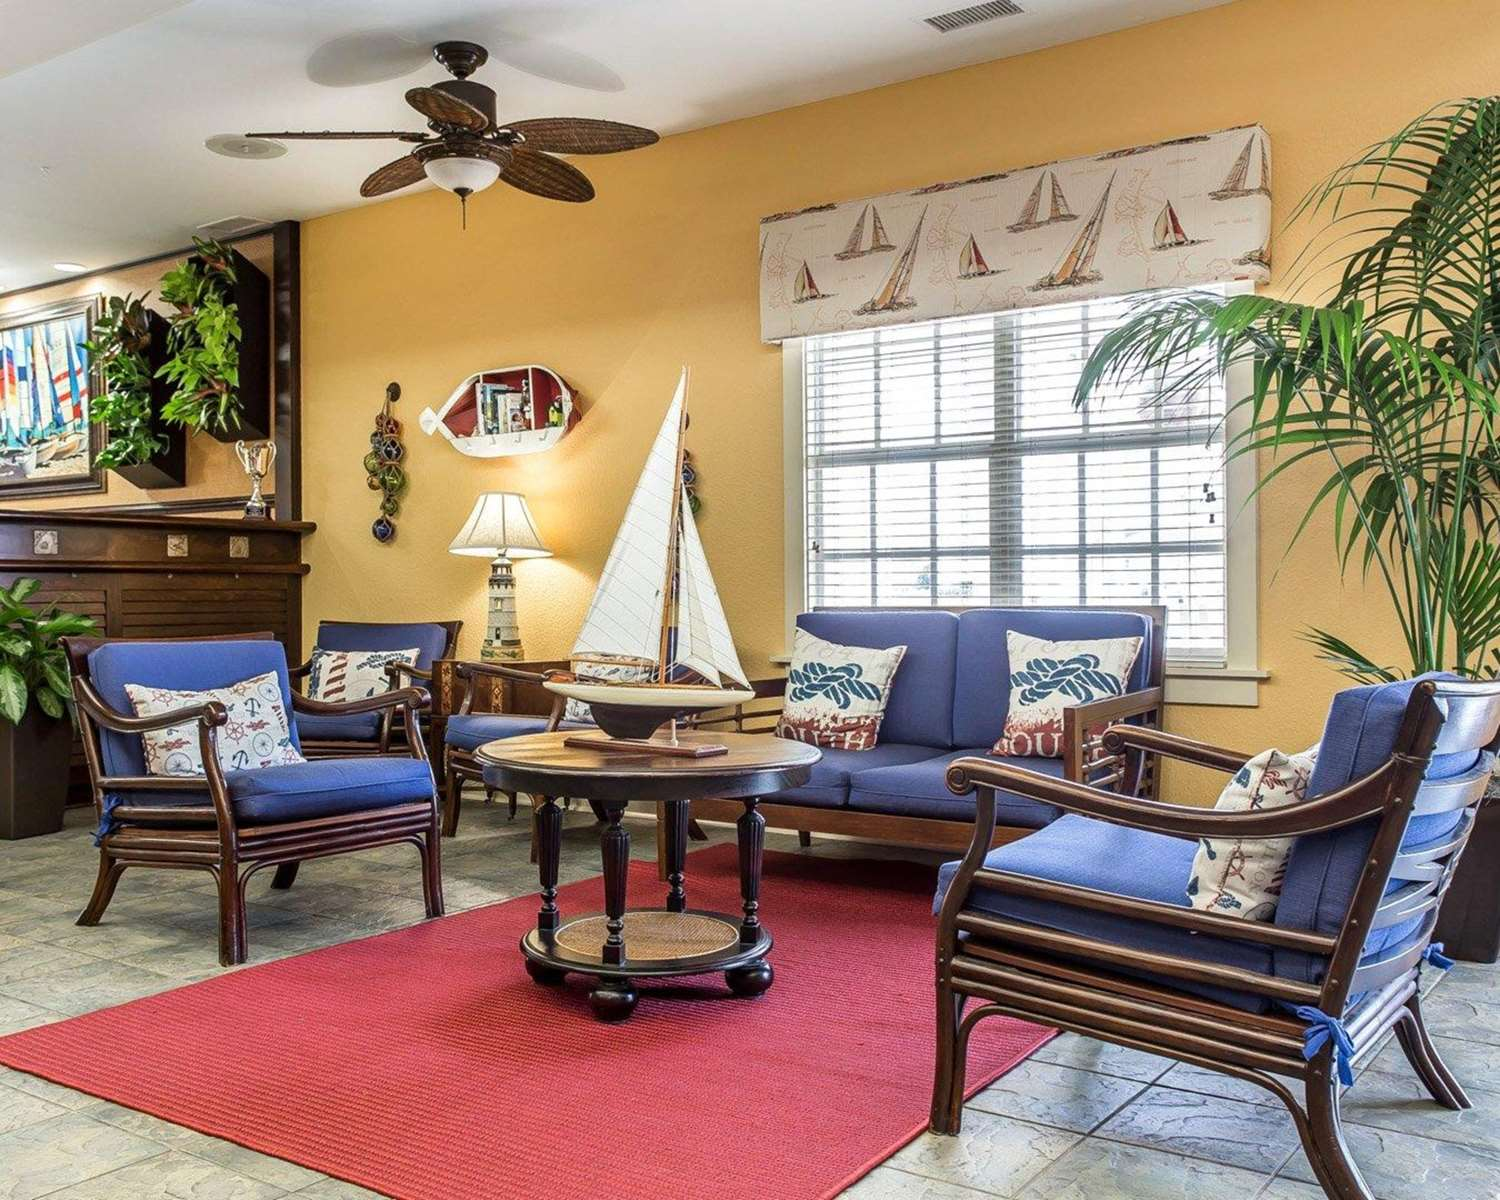 Lobby - Bluegreen Vacations Harbor Lights Resort Myrtle Beach